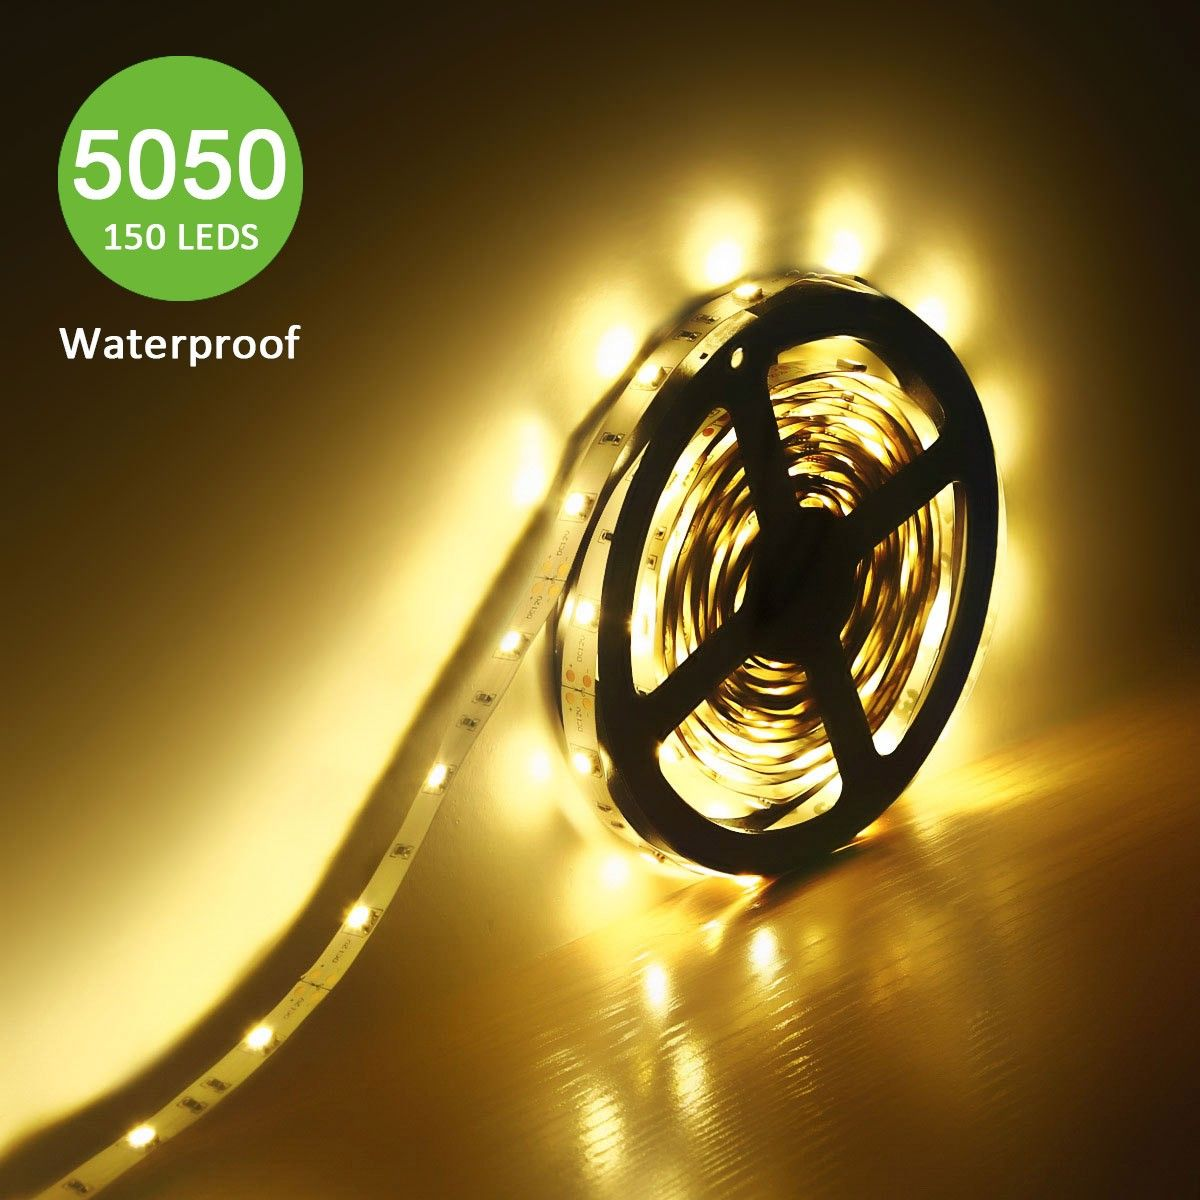 12V Waterproof Led Light Strips Impressive 12V Flexible Led Strip Lights Warm White 150 Units 5050 Leds 2018